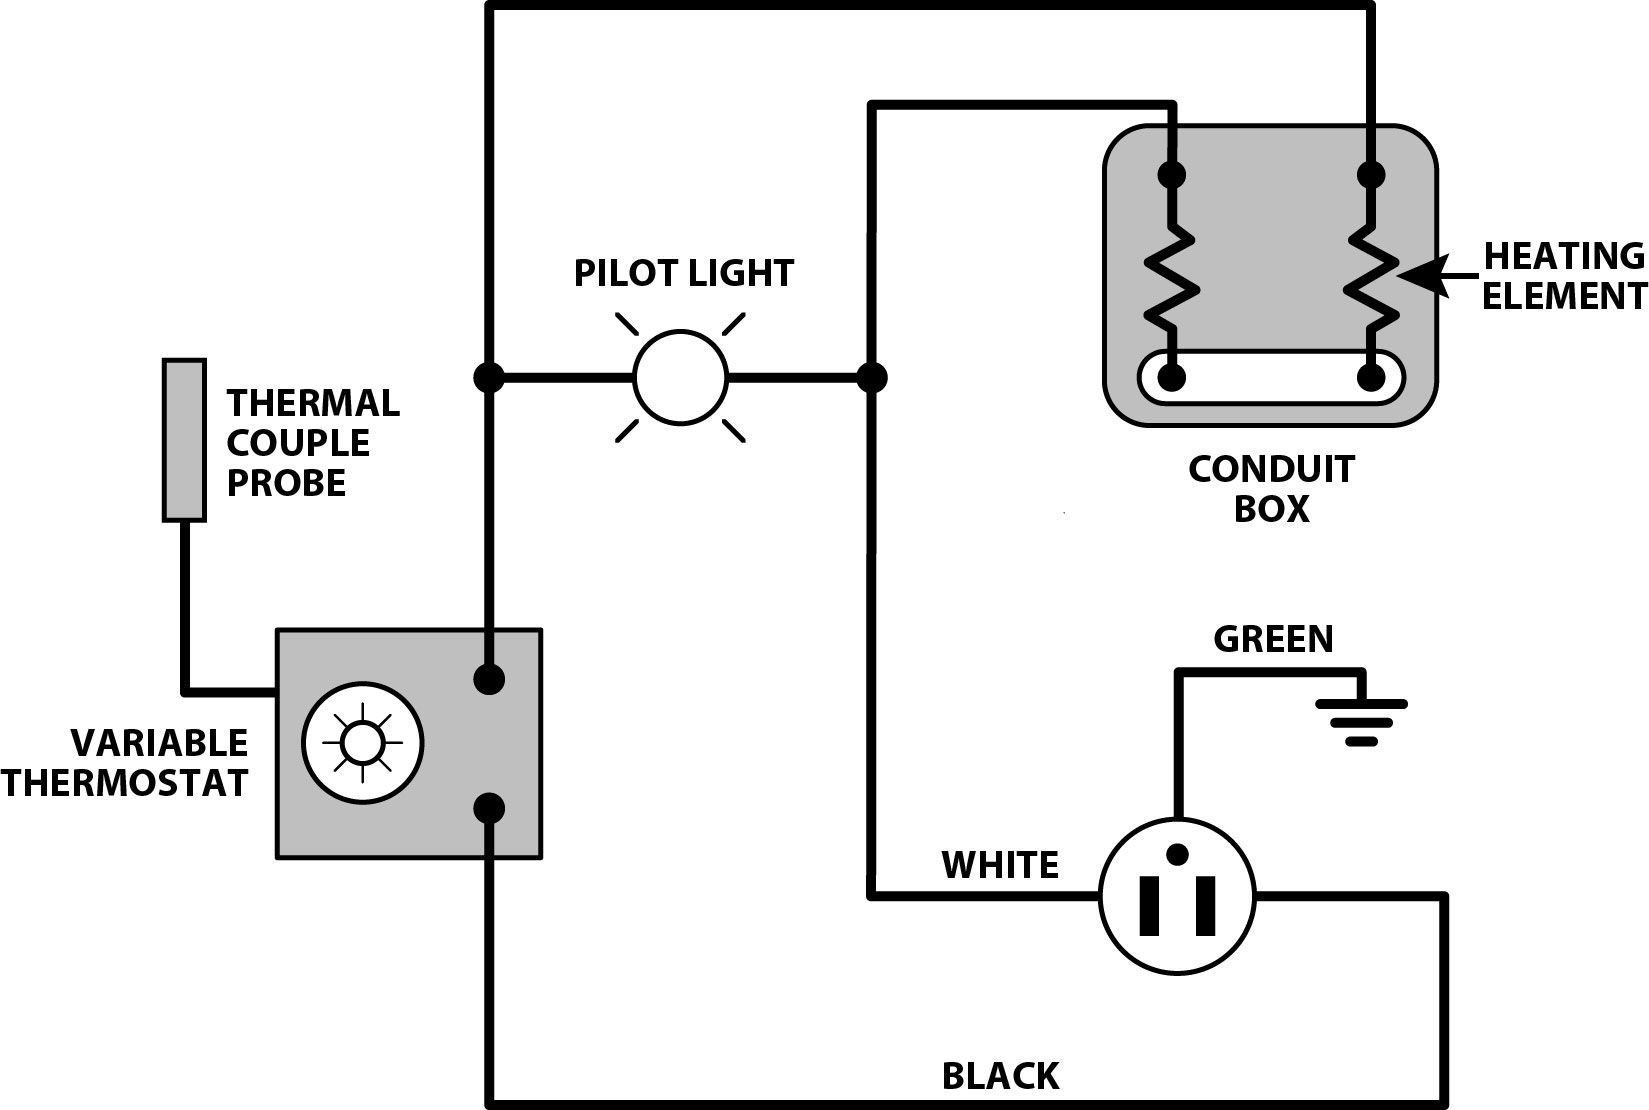 dryer wiring diagram kenmore dryer wiring diagram heating element images lg washing heating element for 220 volt wiring diagram